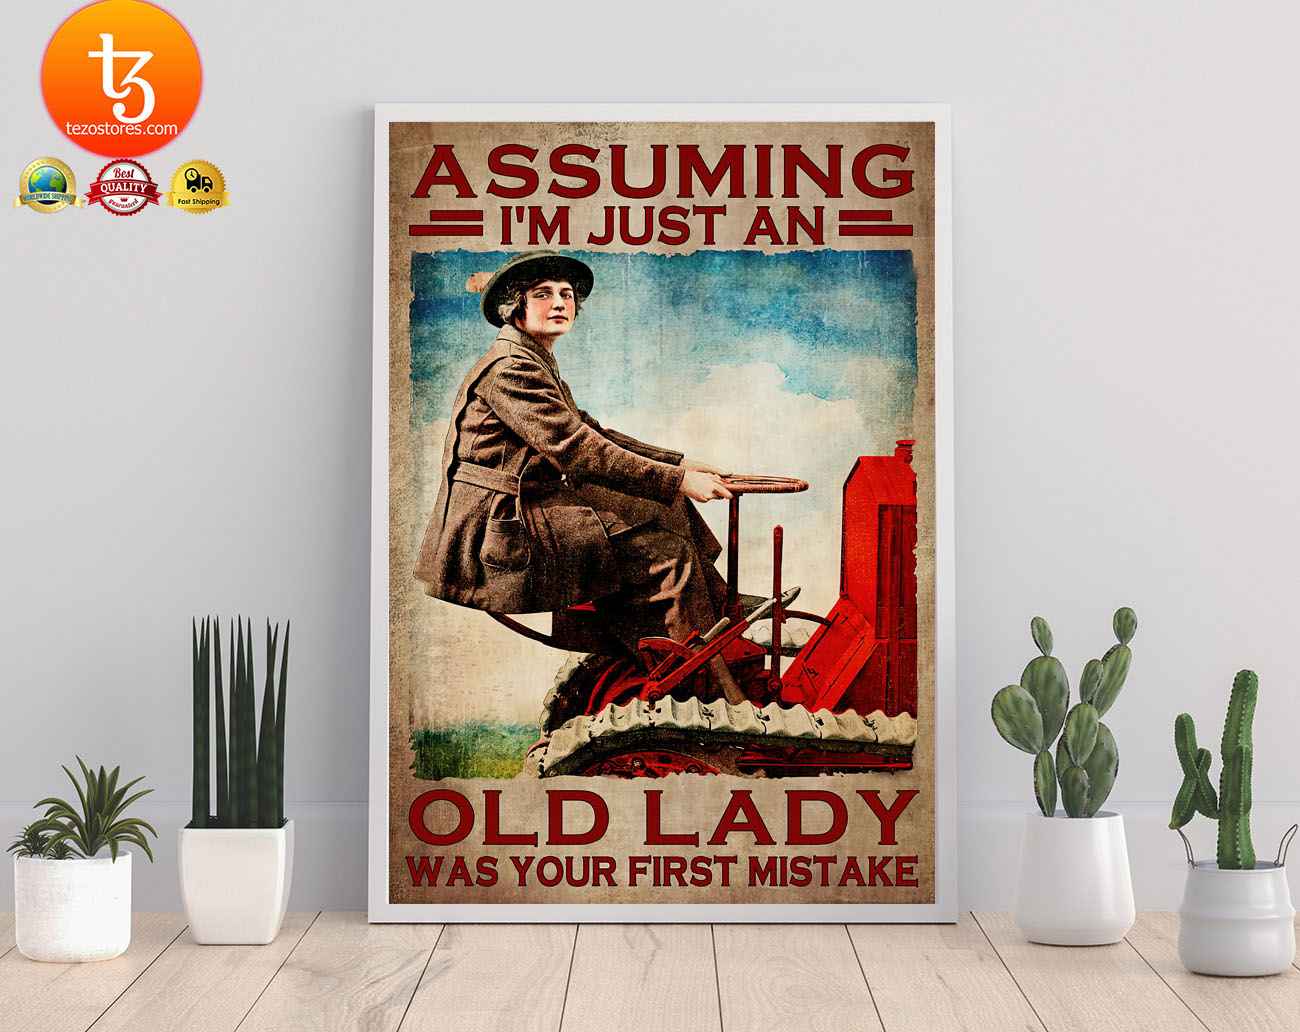 Assuming Im just an old lady was your first mistake poster2